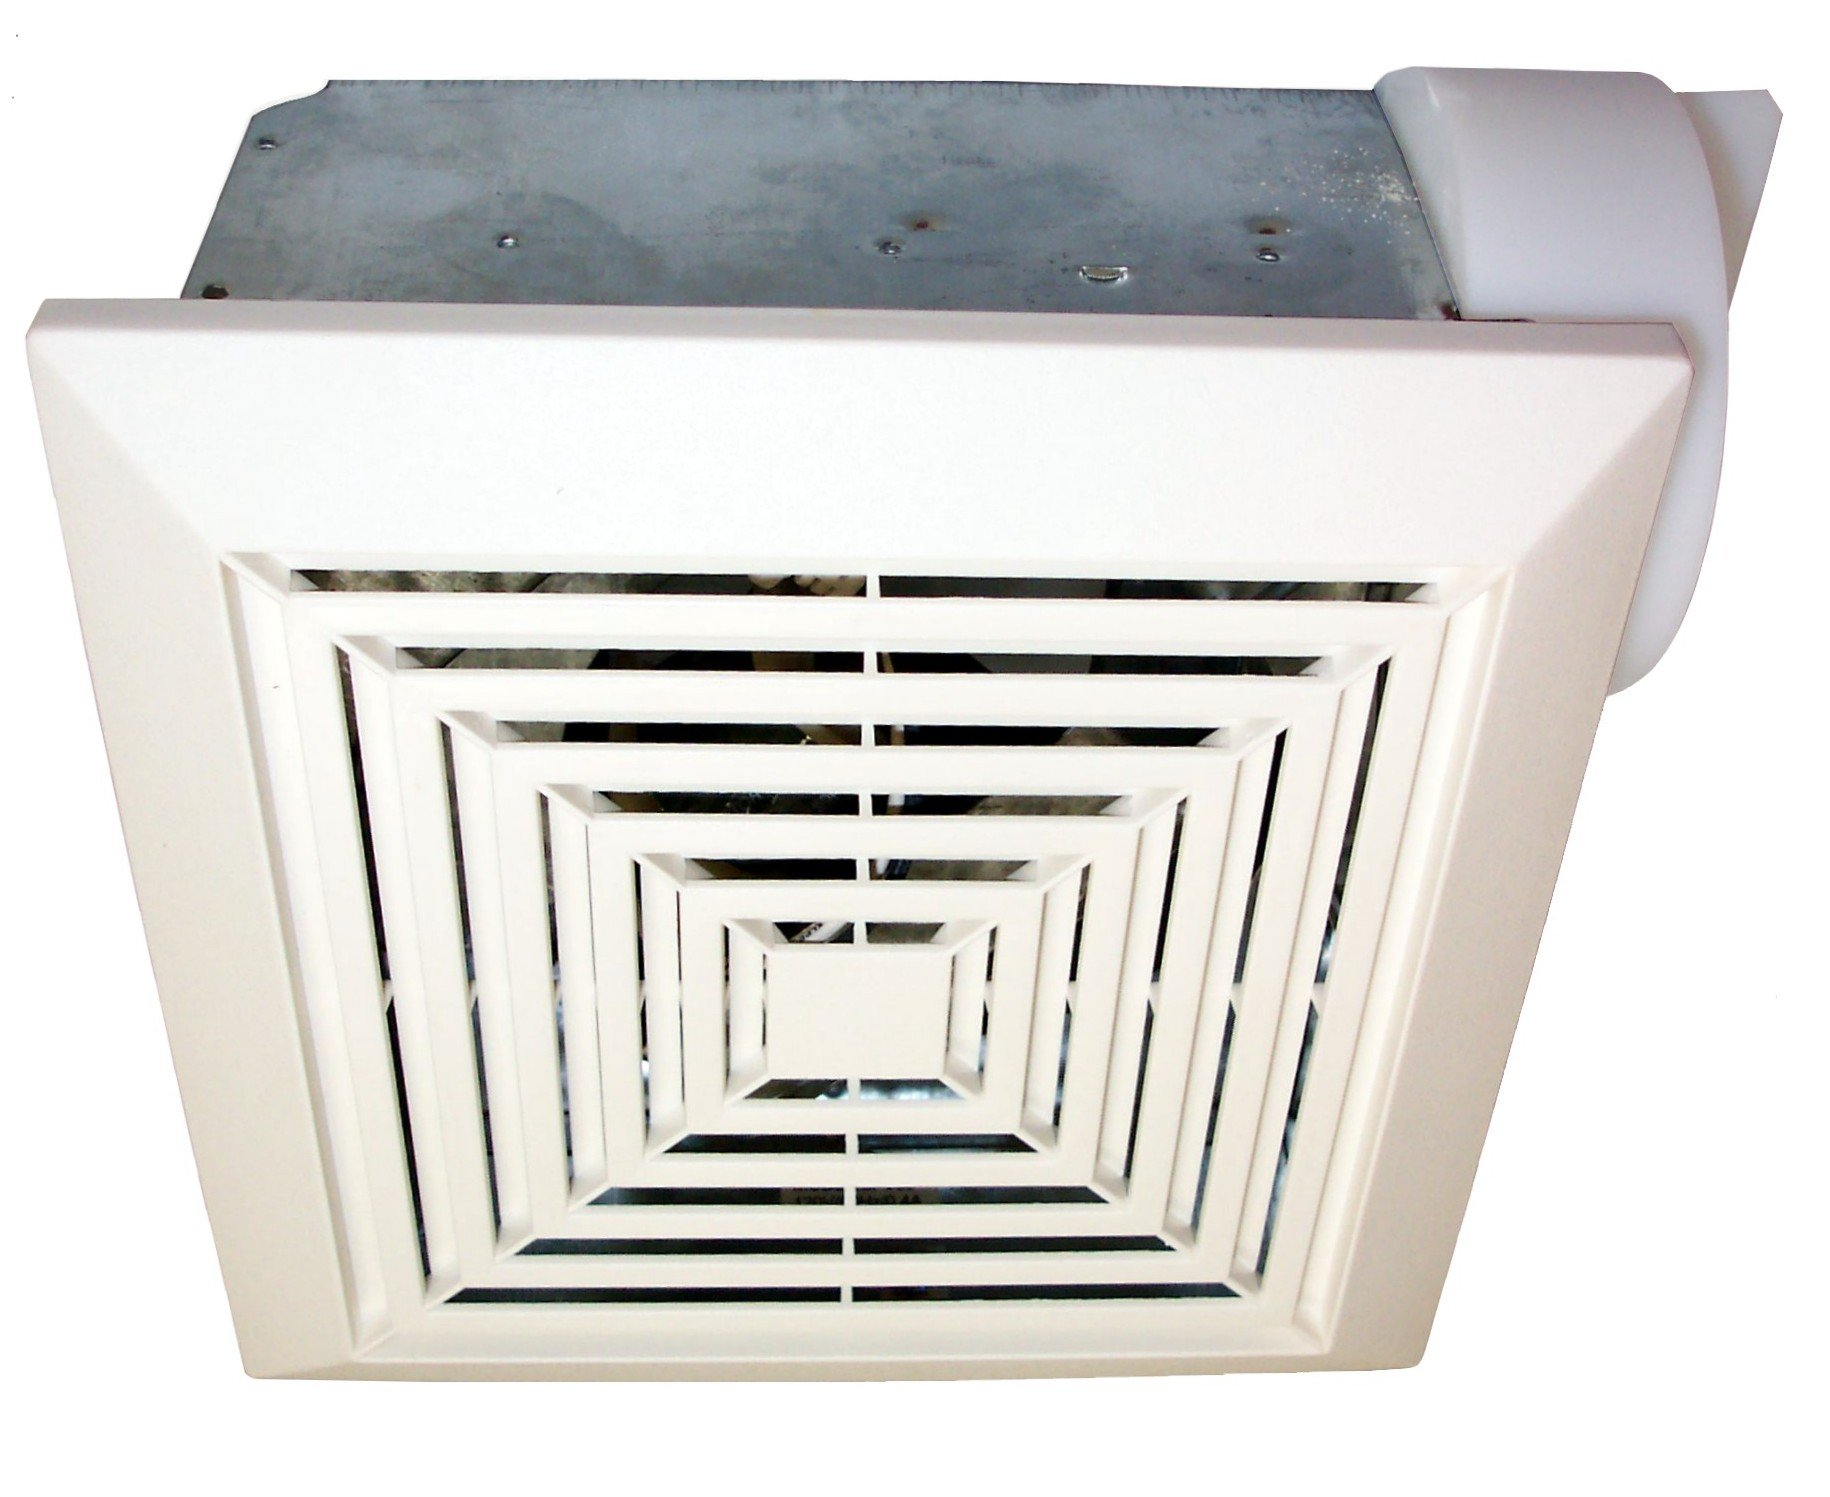 USI Electric BF-1104 Bath Exhaust Fan with Custom-Designed Motor, 110 CFM by Universal Security Instruments